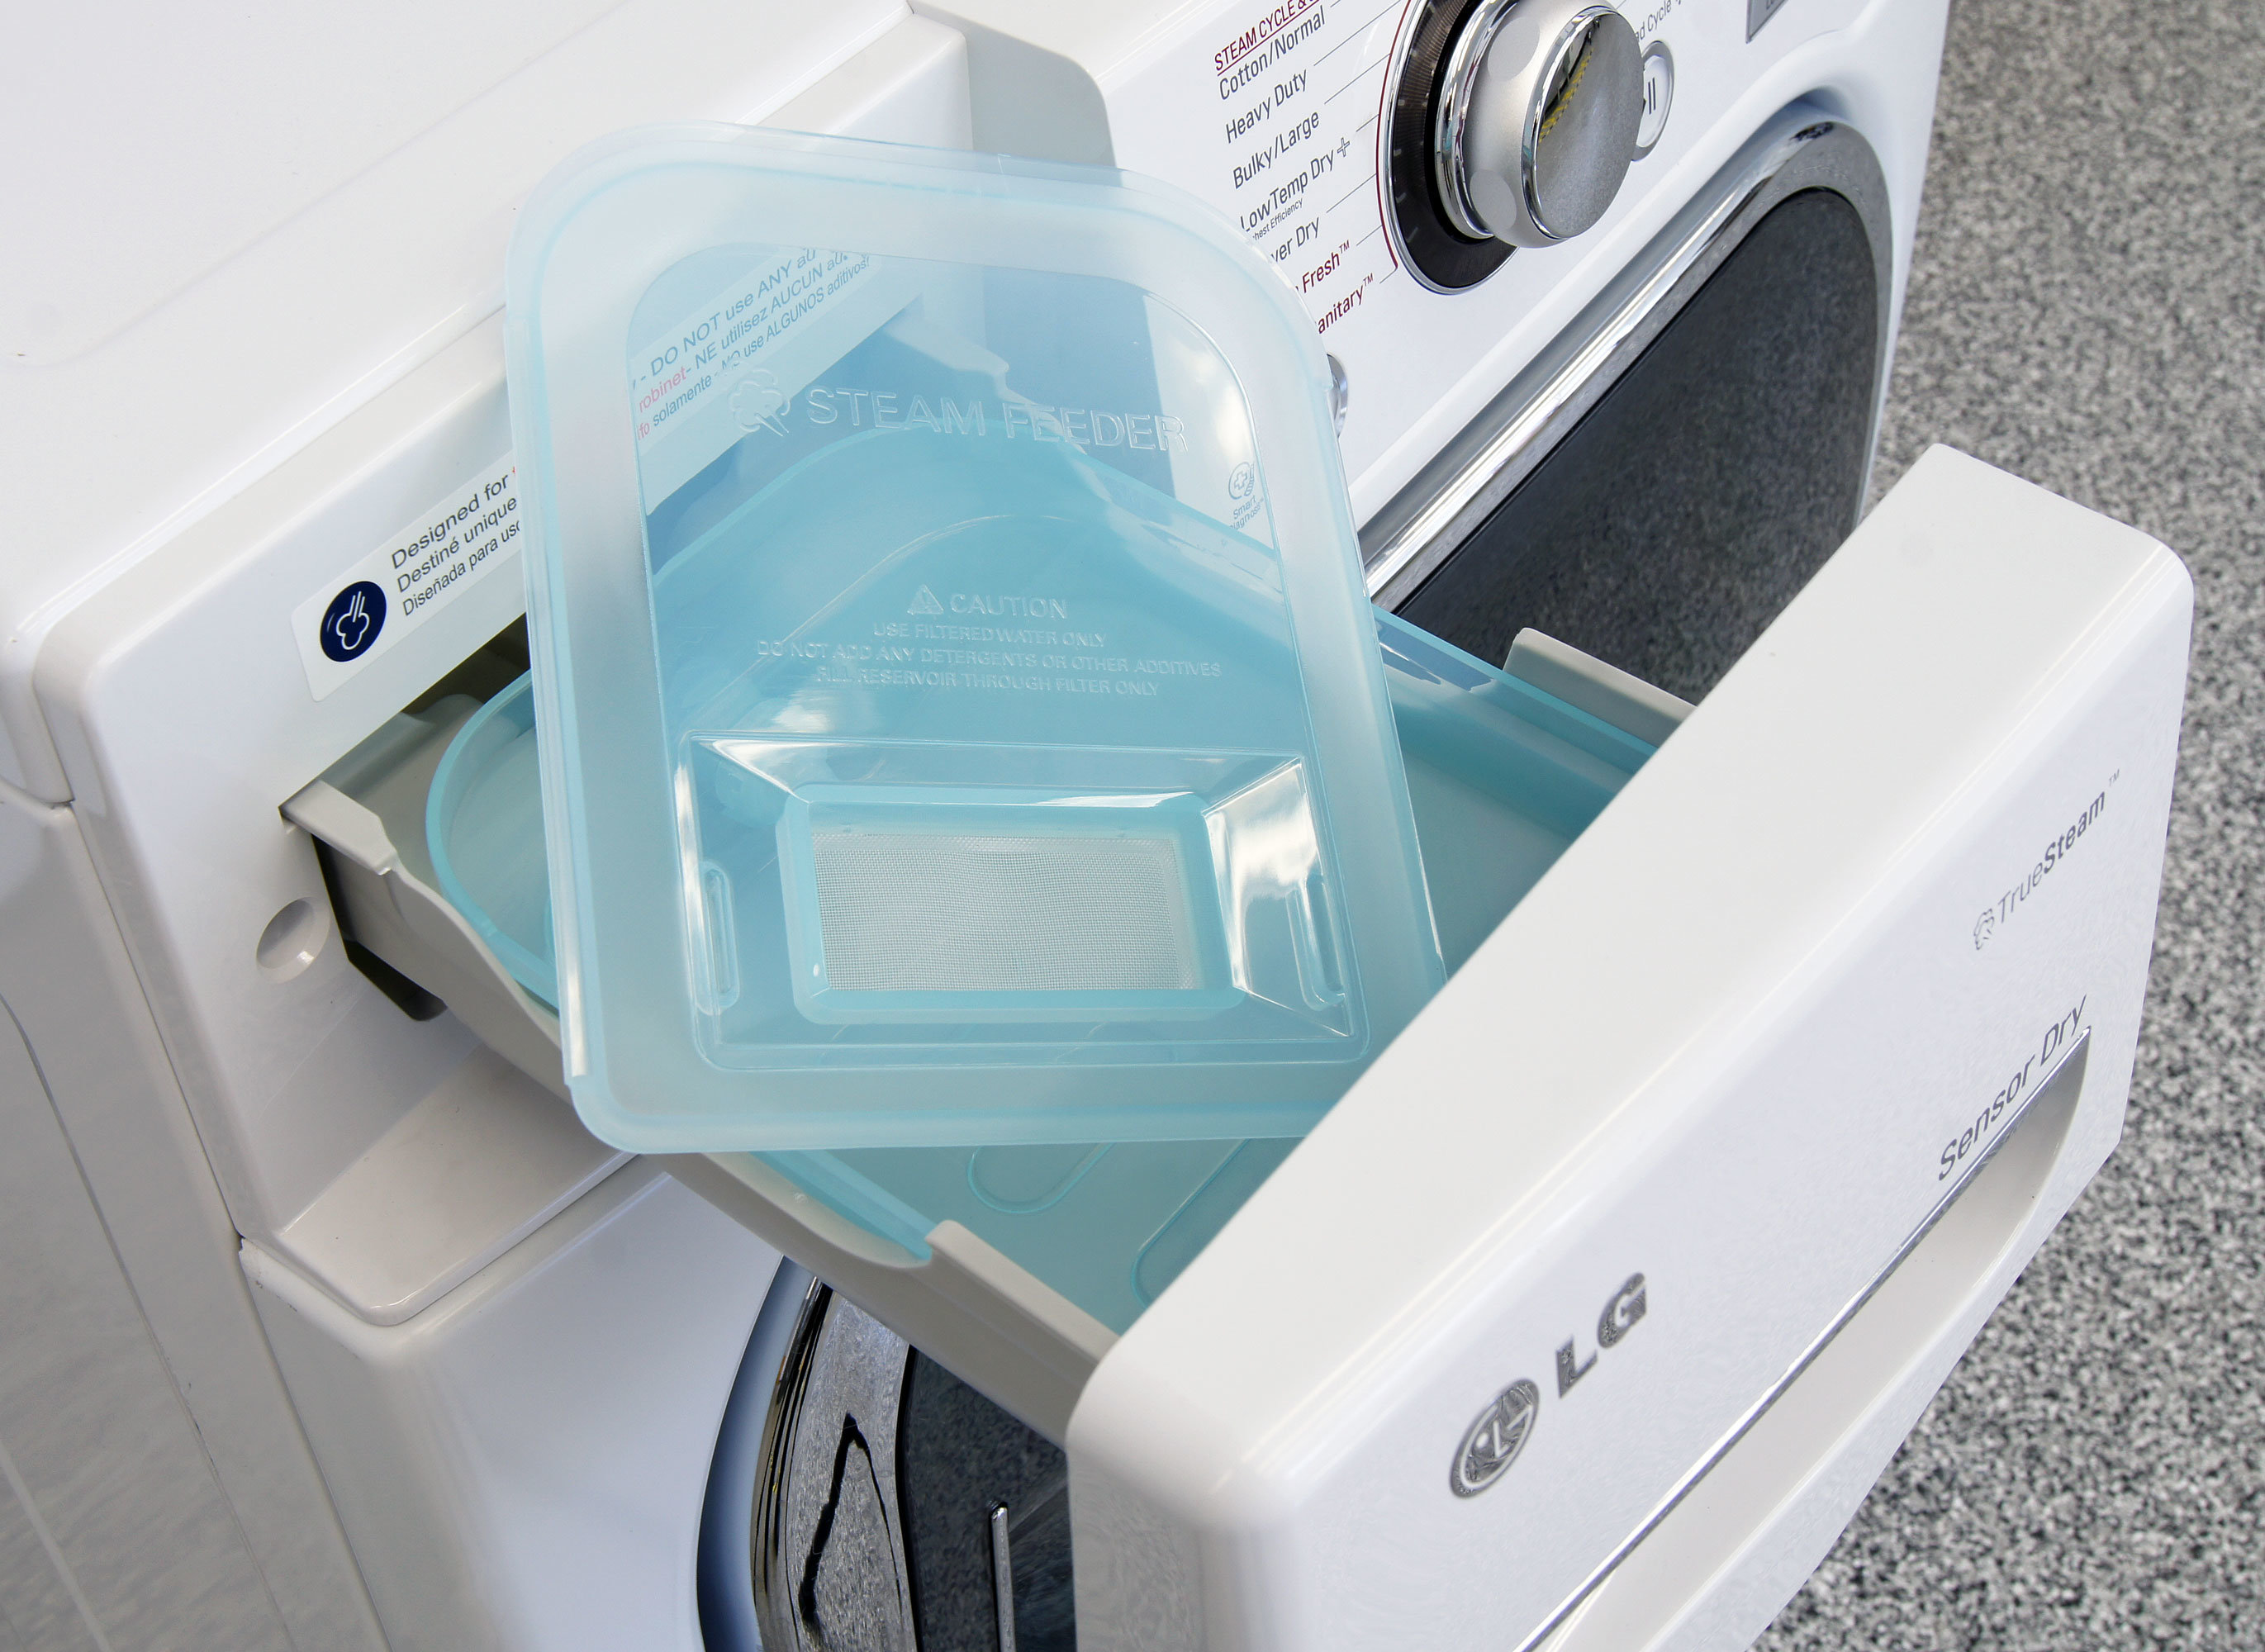 The lid pops off the bin for easy cleaning, but you're meant to pour water through the small filter to keep particulates out of the dryer.